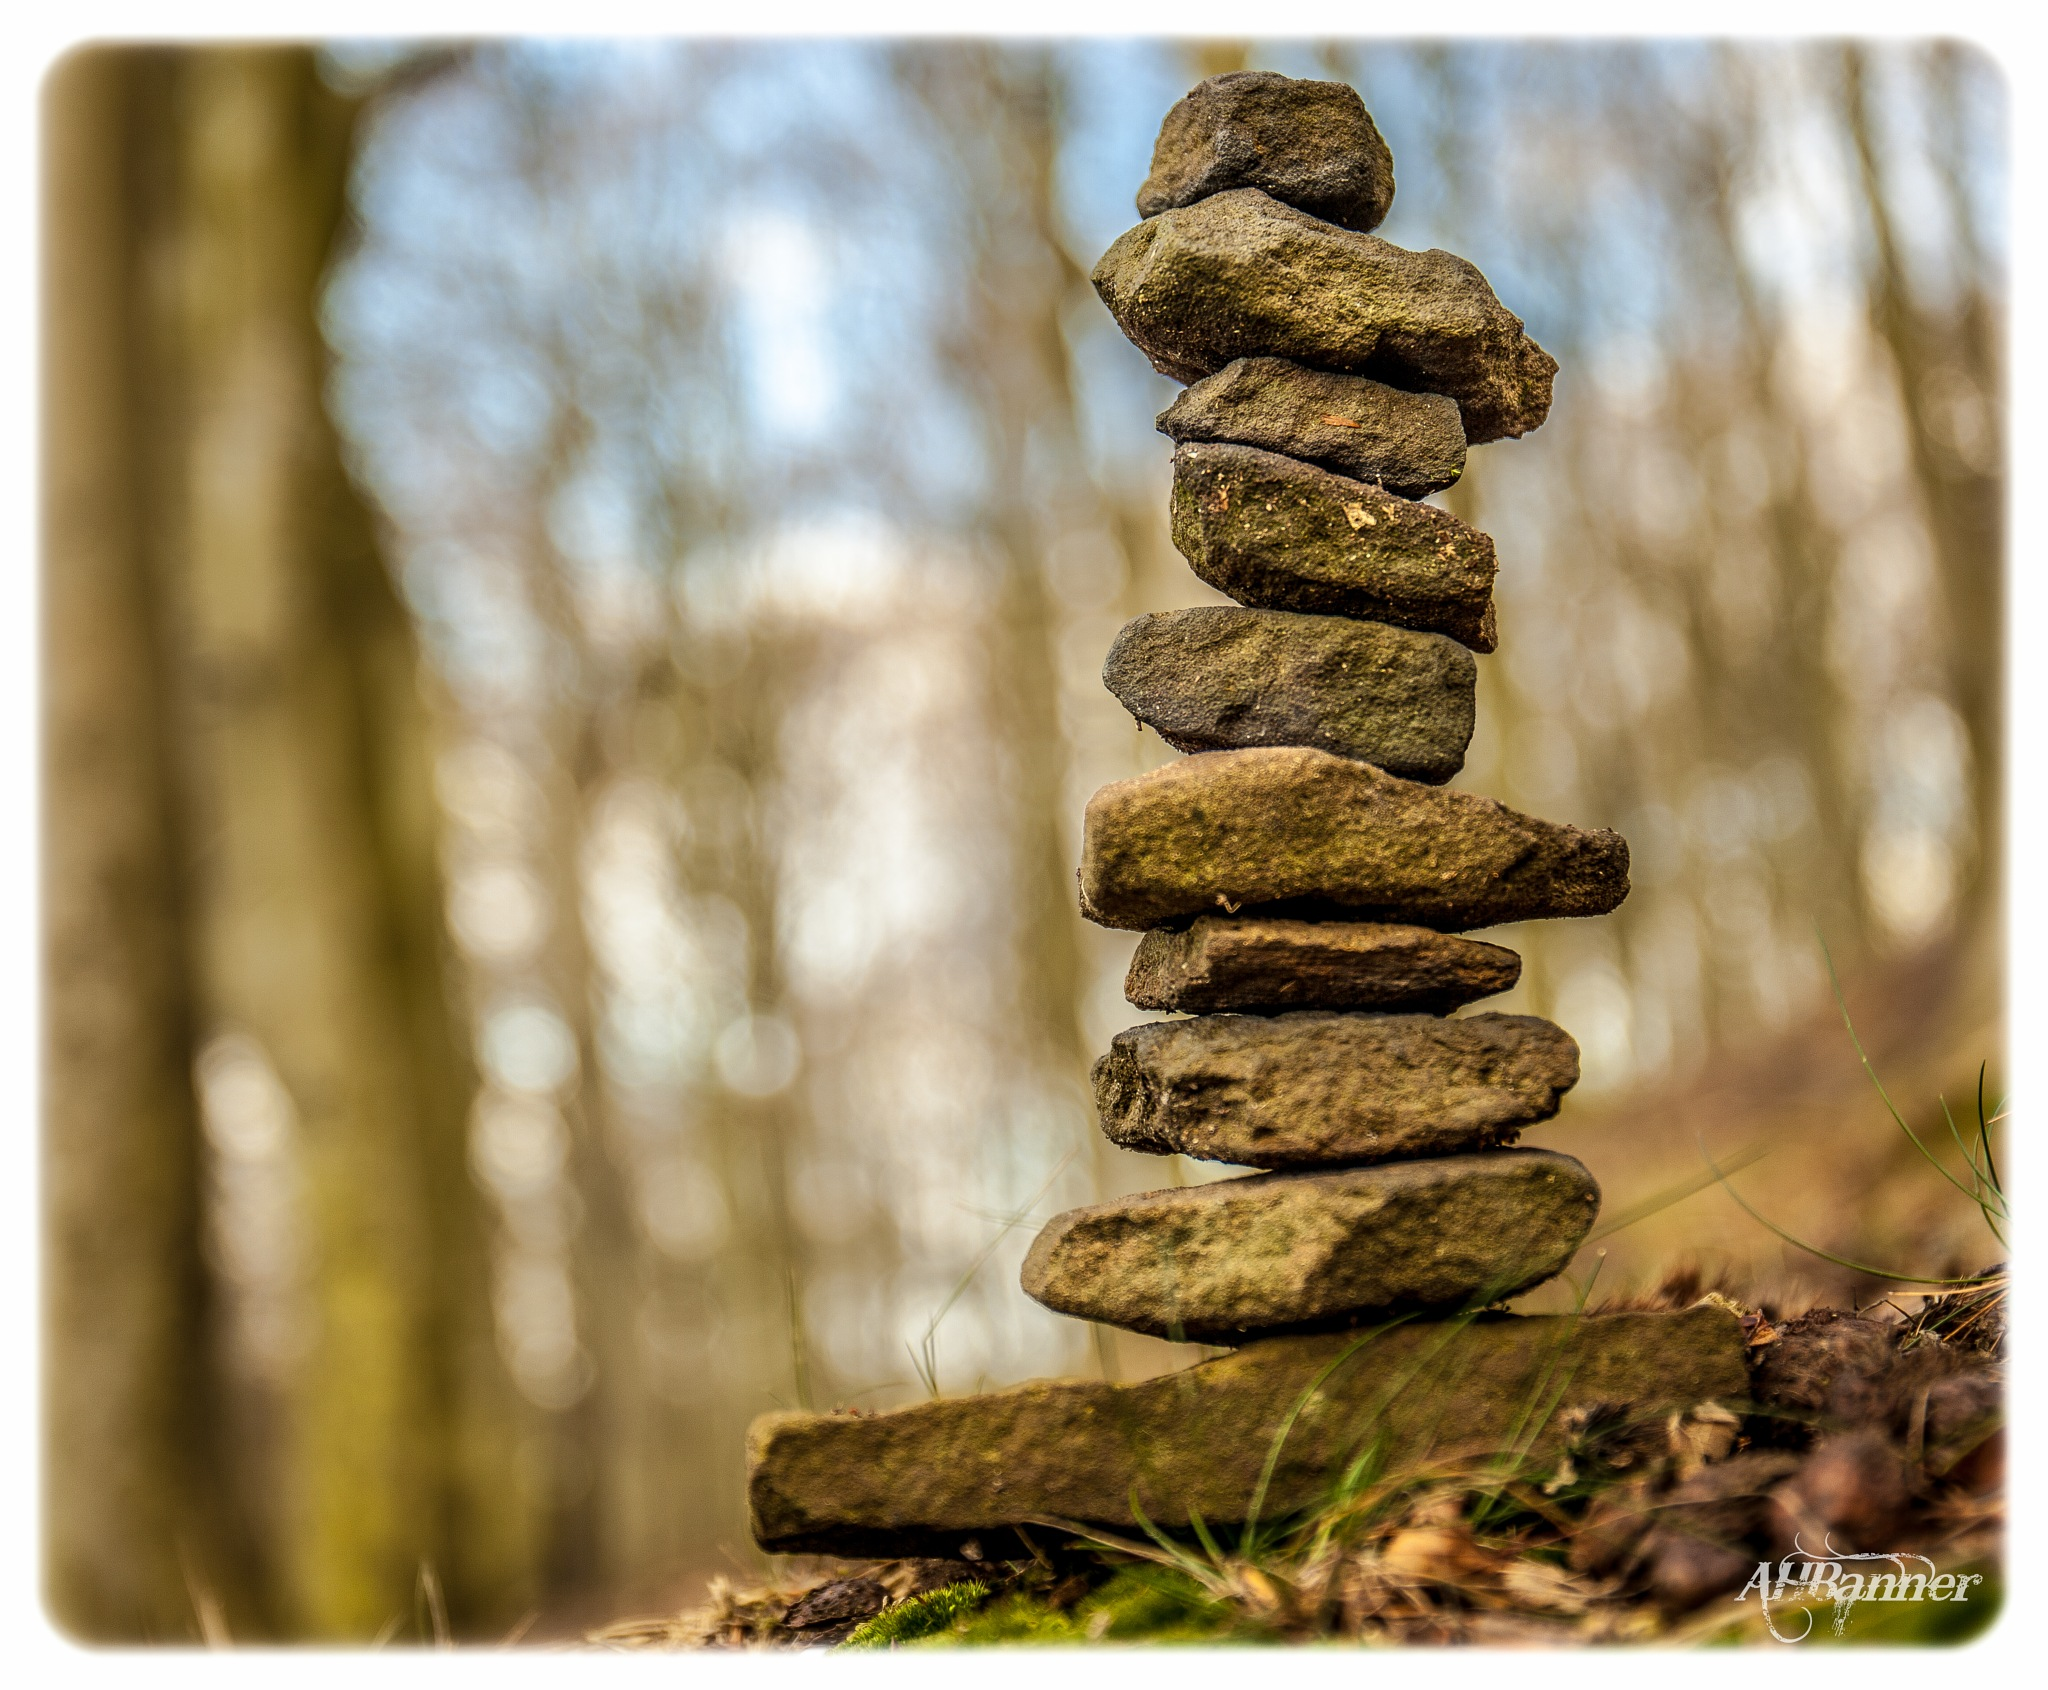 Balancing Act by Ady Banner